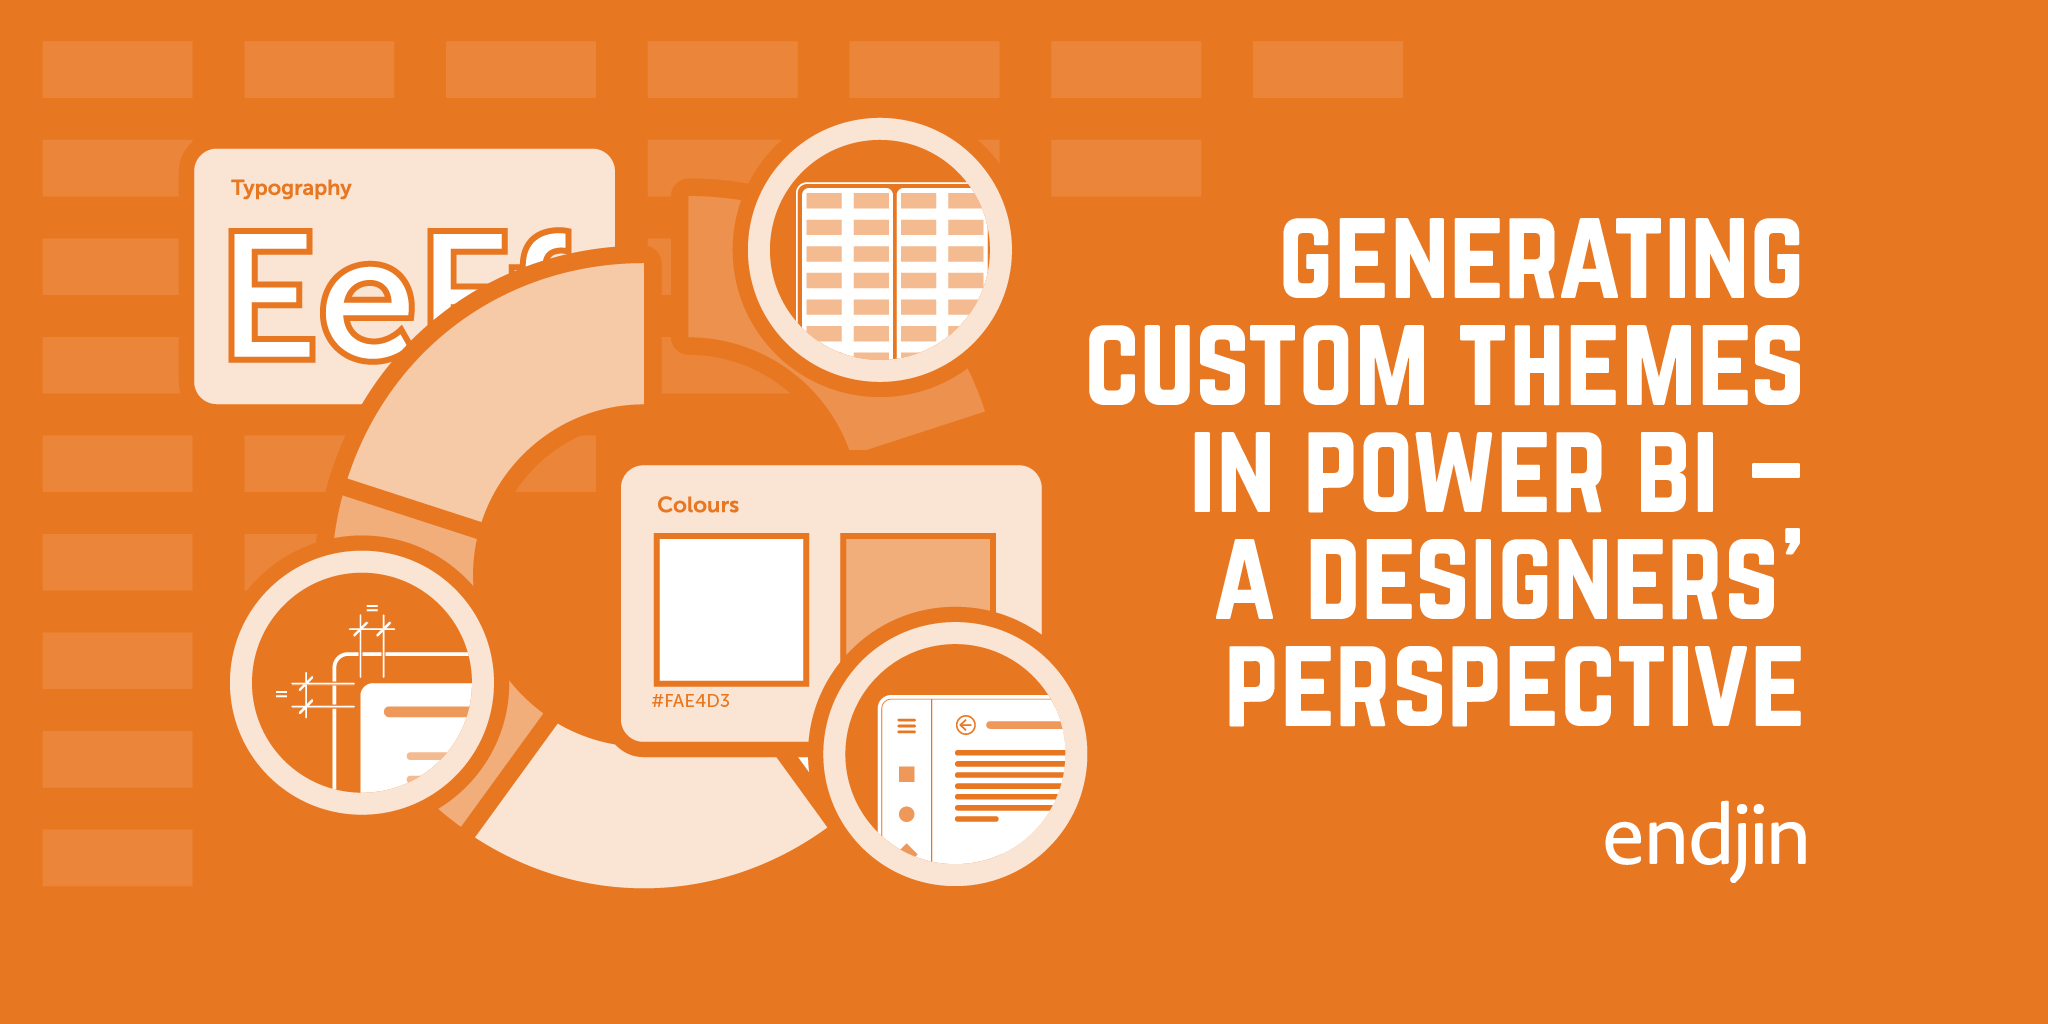 Generating custom themes in Power BI – A designers' perspective